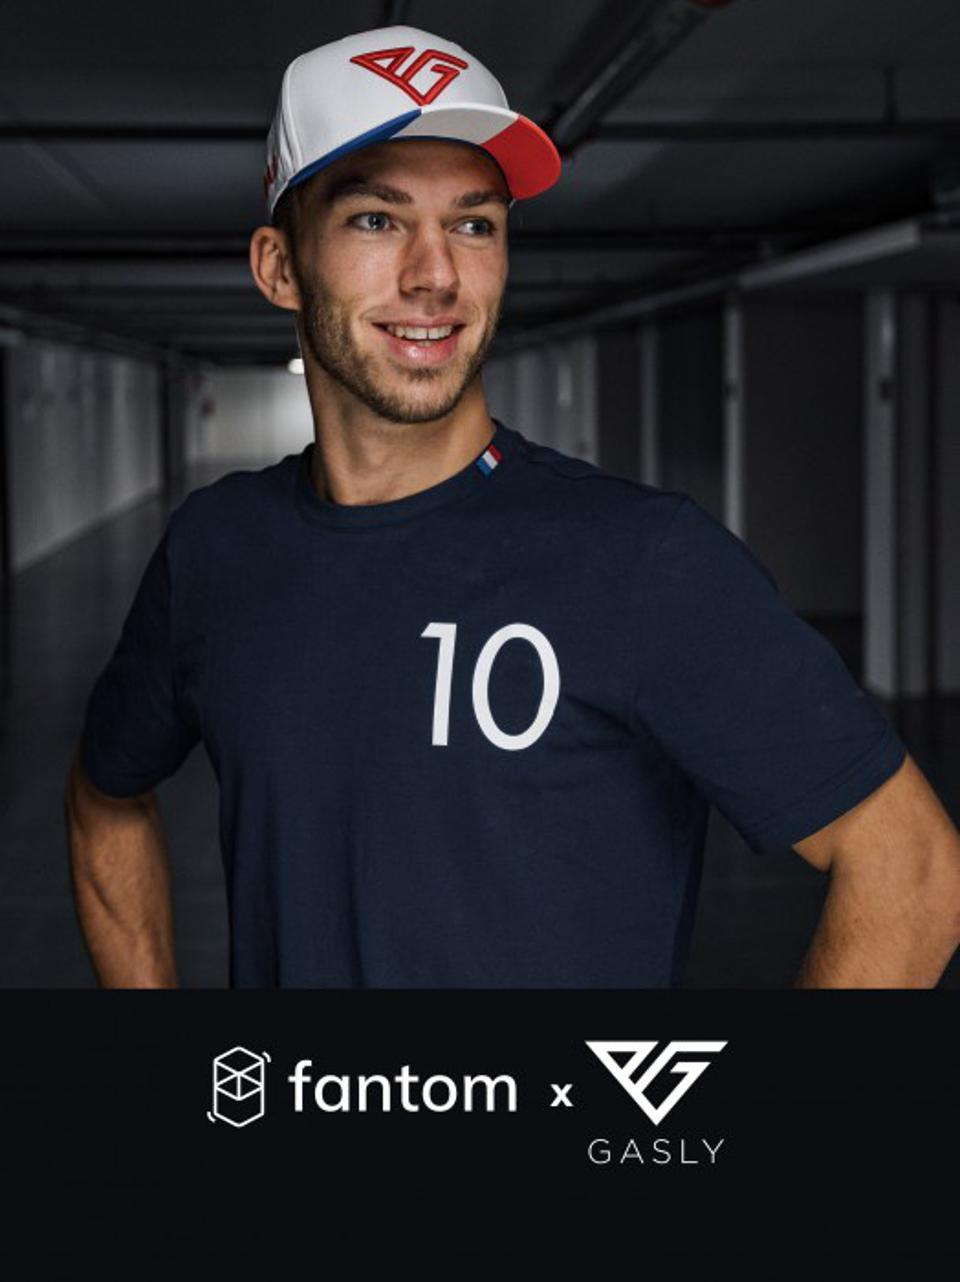 Pierre Gasly announces sponsorship with Fantom.